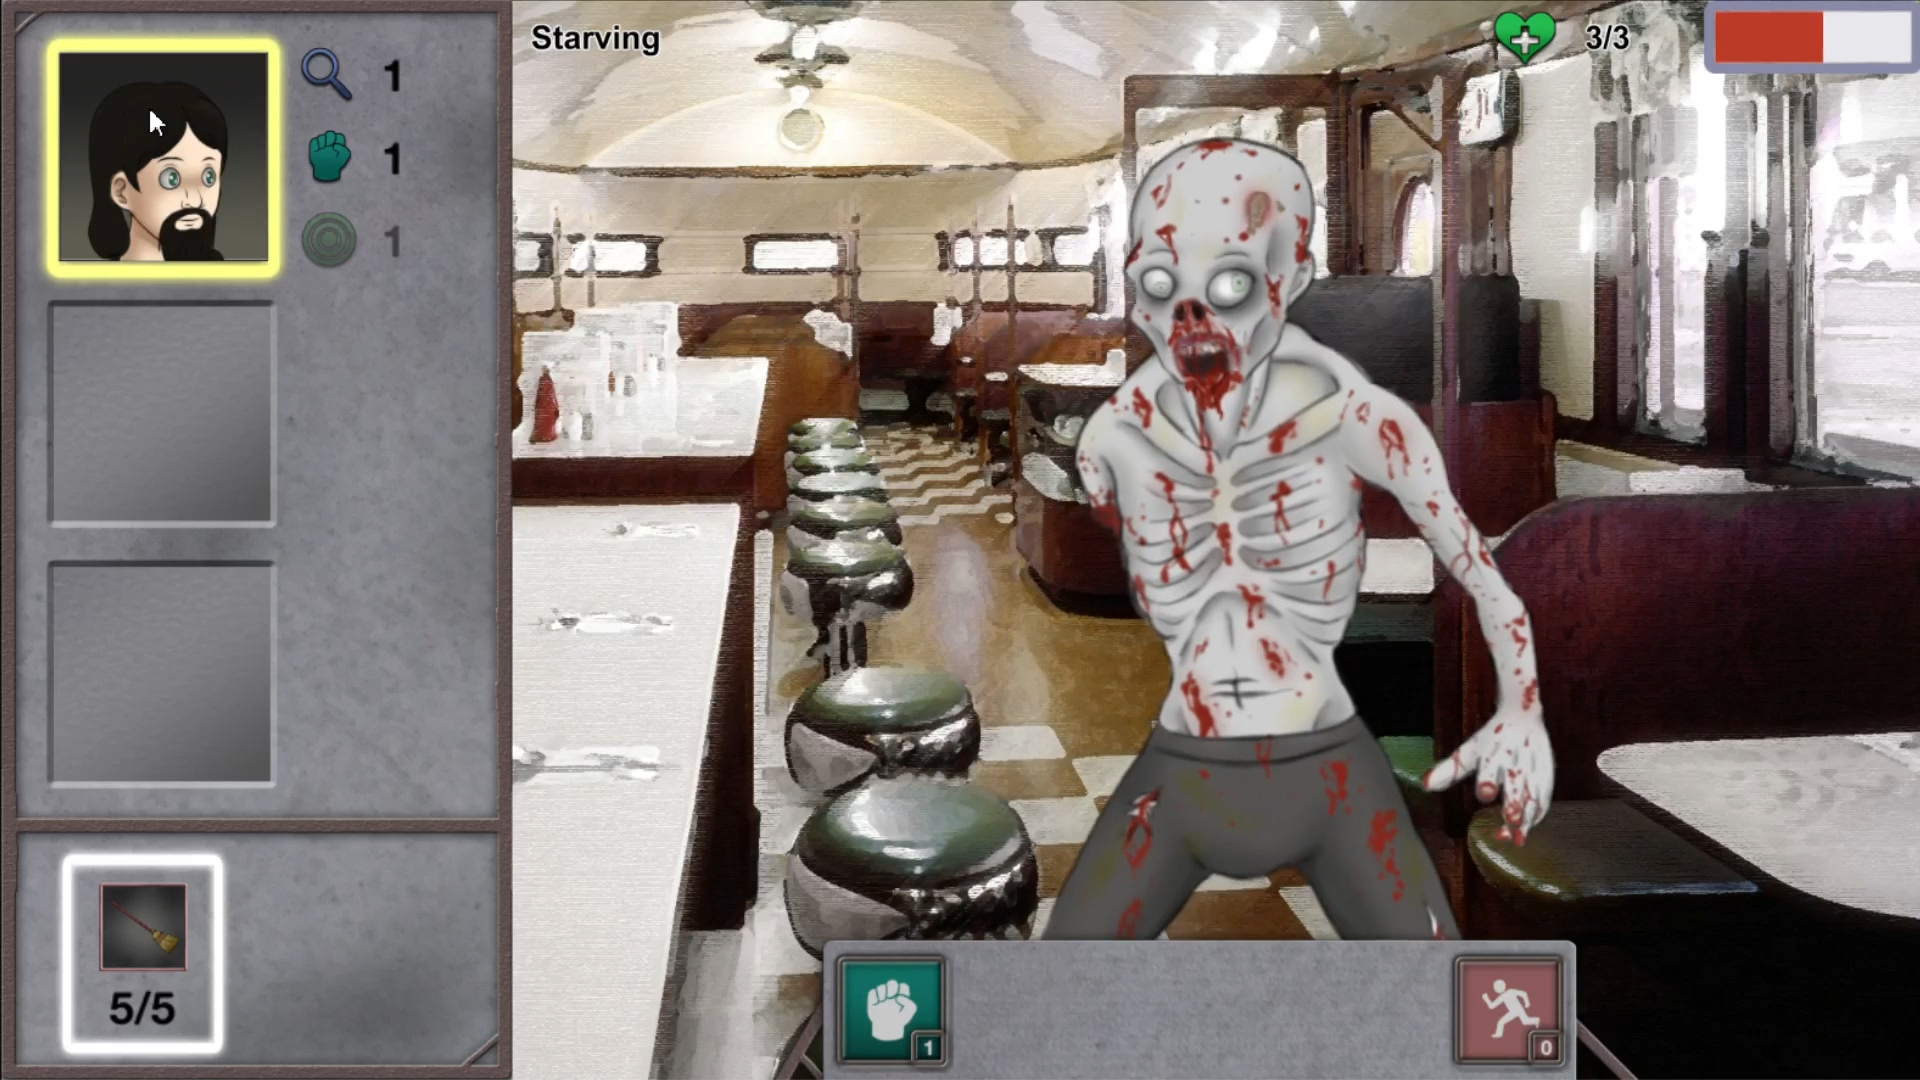 Starving Zombie